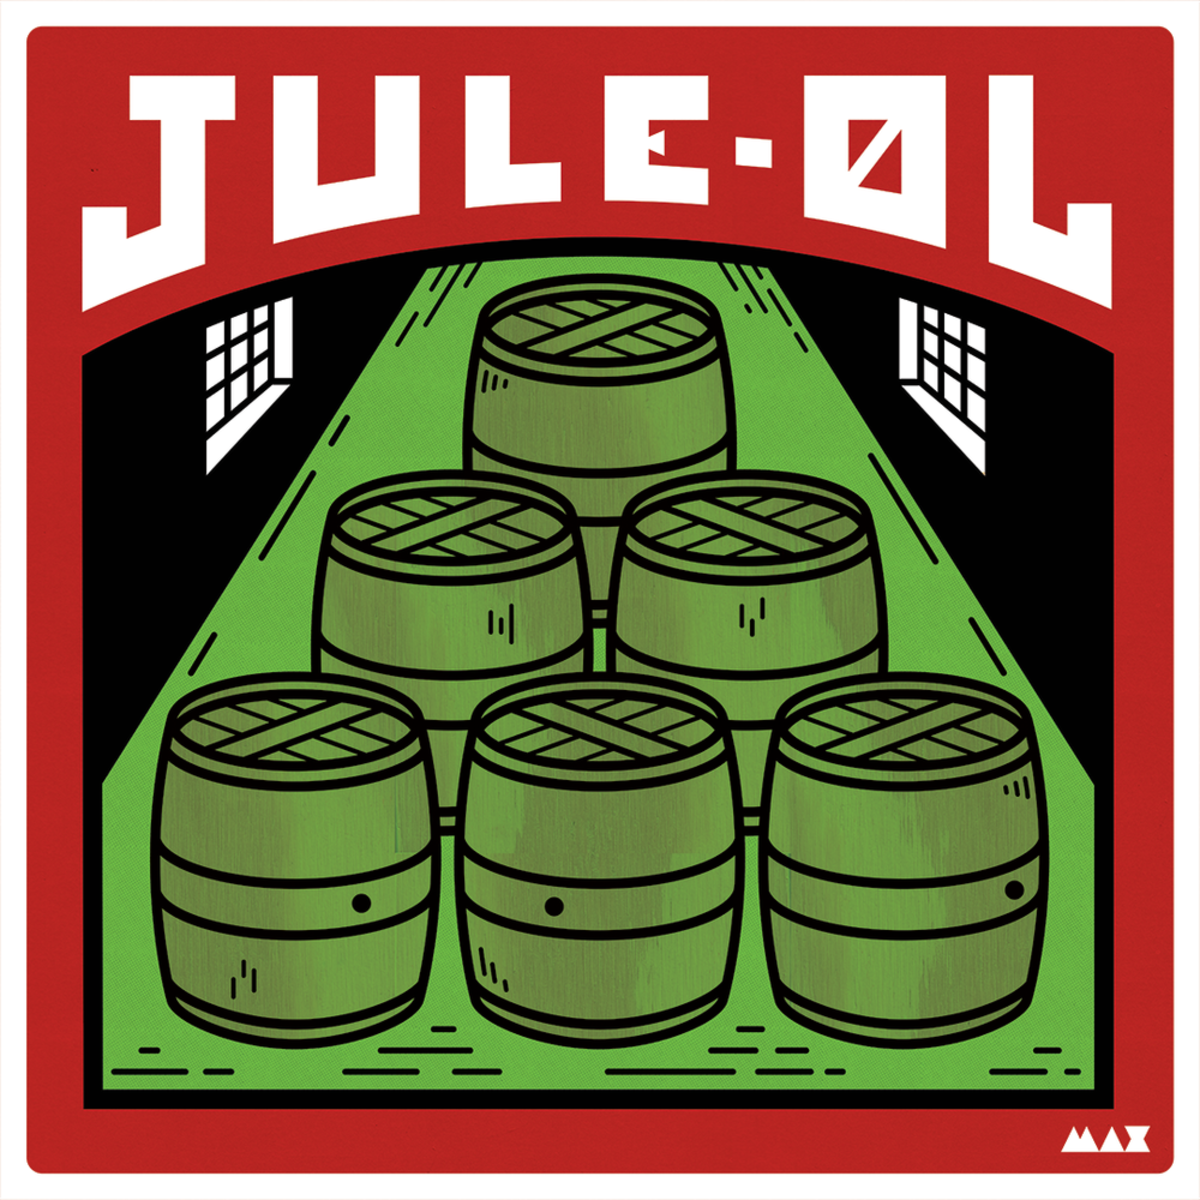 Jule-Ol -- A Norse beer brewed at Christmas time.